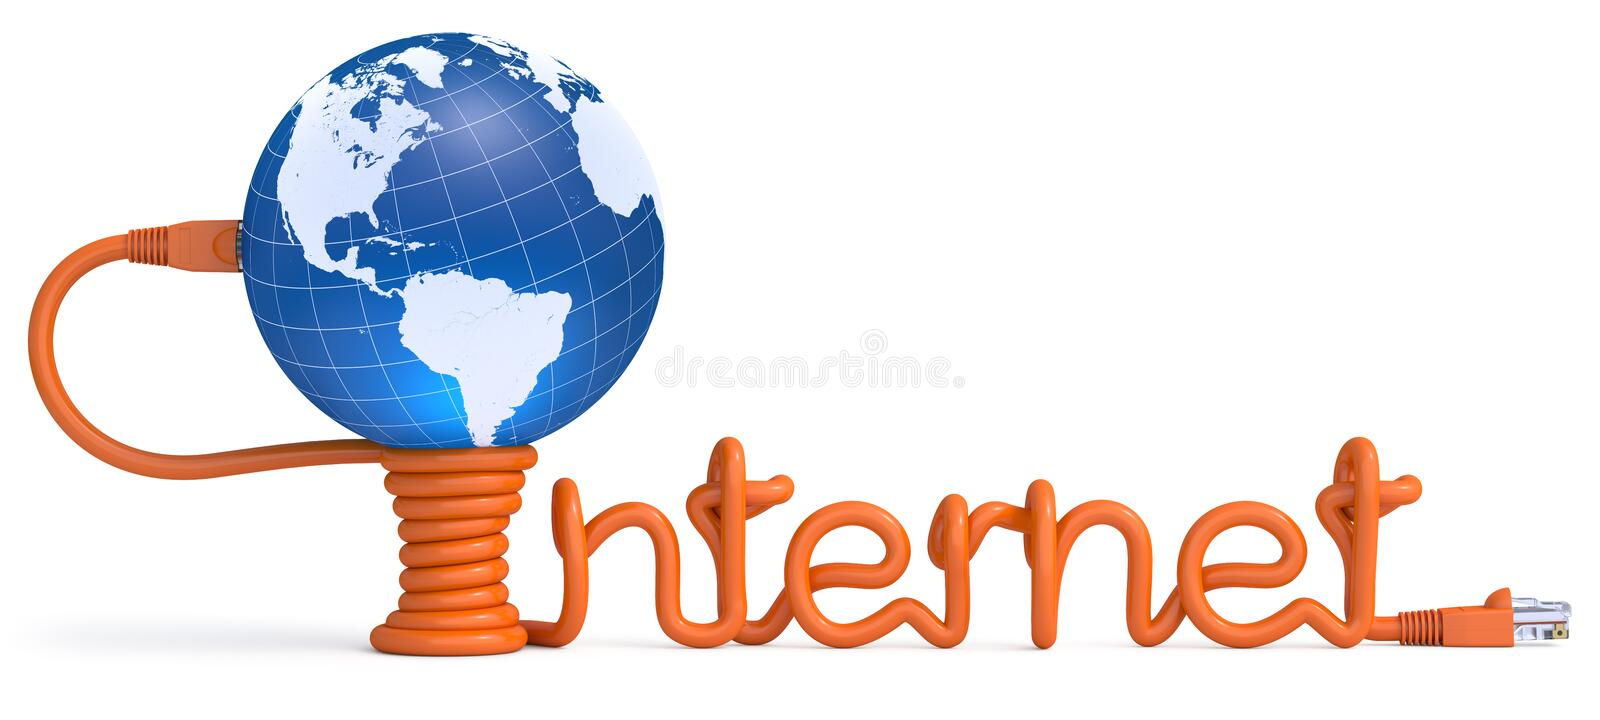 Internet cable vector illustration